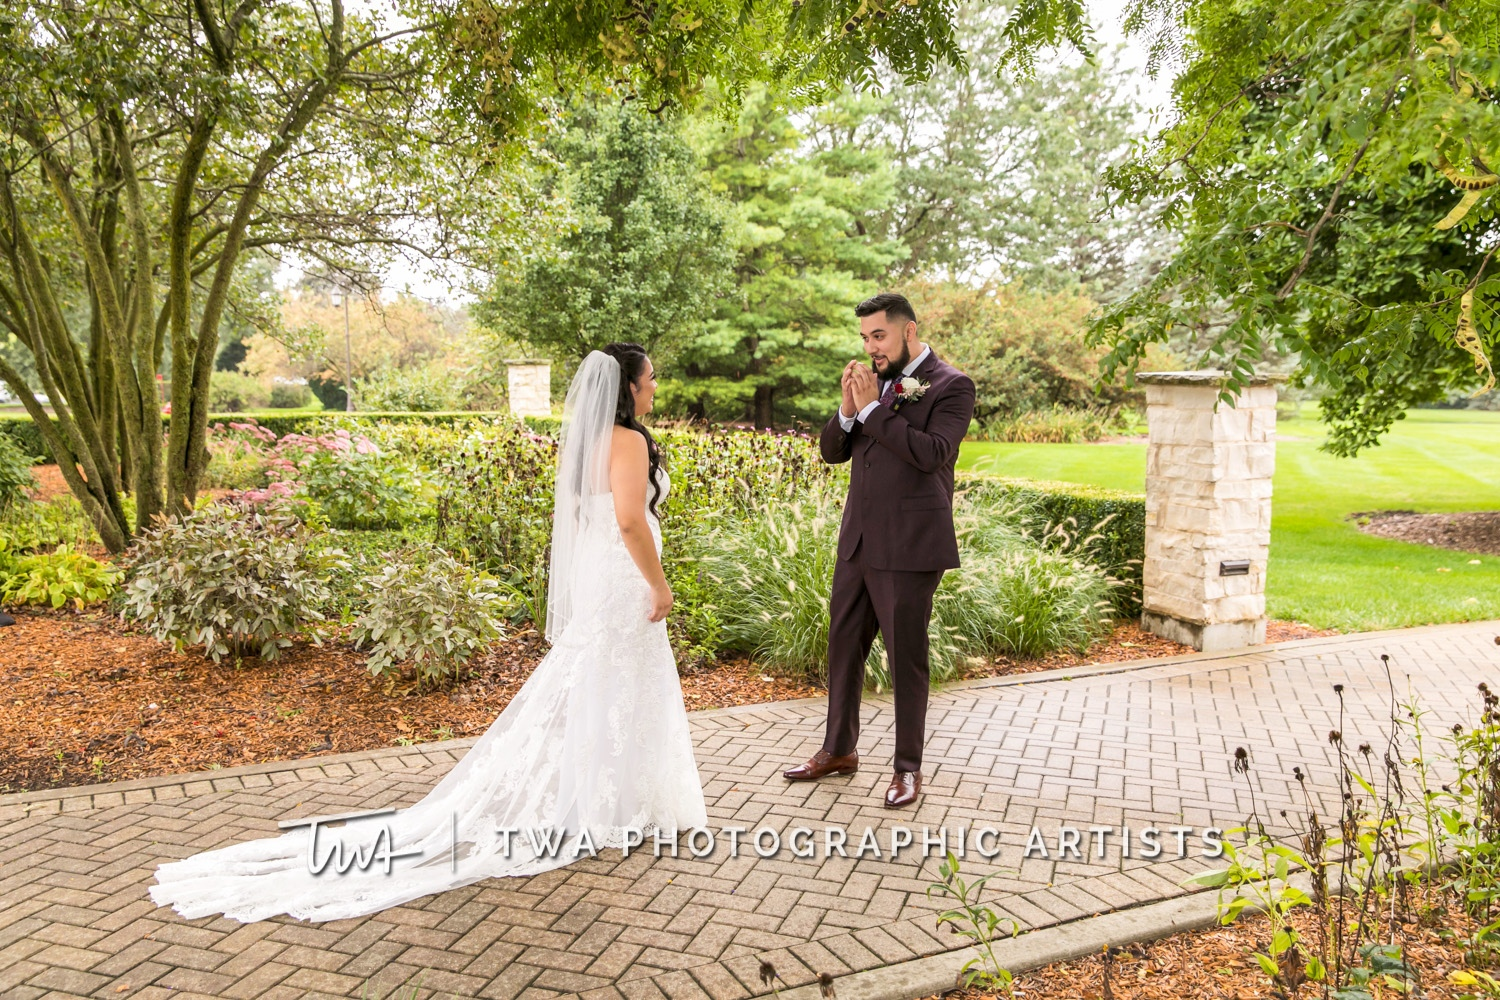 Chicago-Wedding-Photographer-TWA-Photographic-Artists-Danada-House_Ramos_Medrano_WM_DR-017_1492